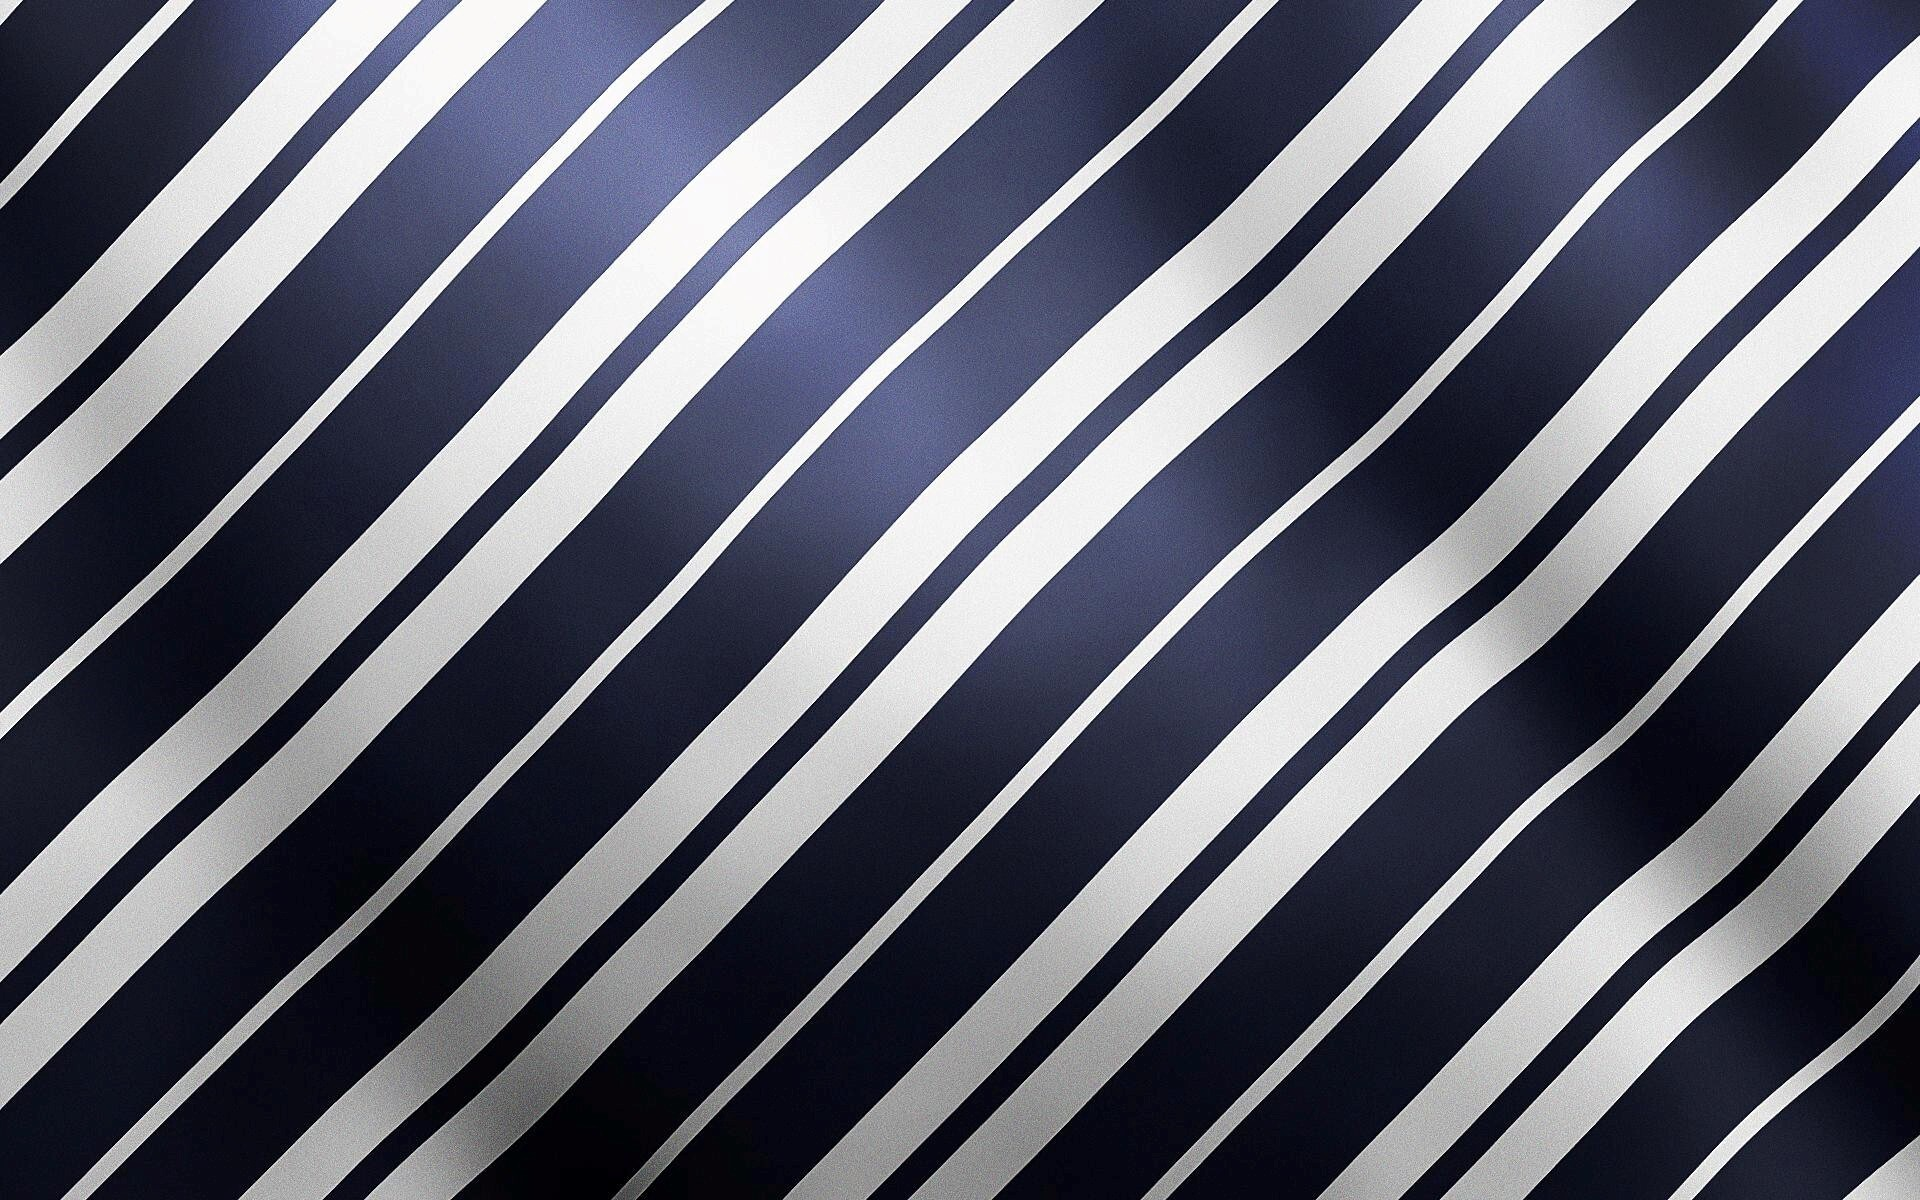 Black and White Line Abstract Background   HD Wallpapers